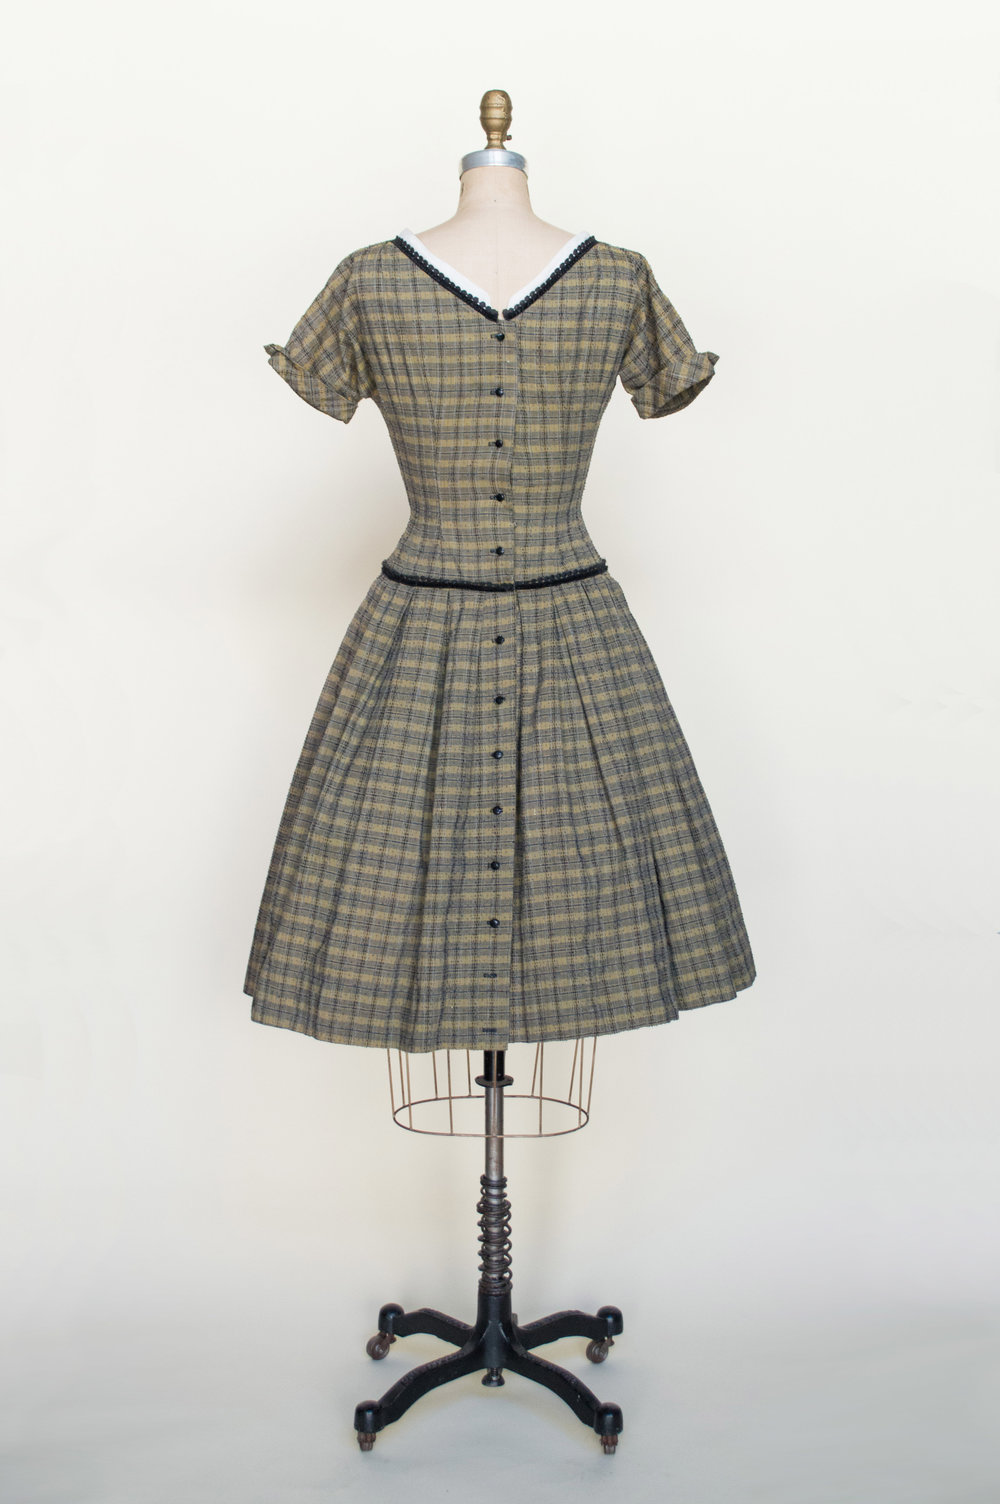 A 1950s plaid dress from Dalena Vintage, an Austin vintage clothing shop.